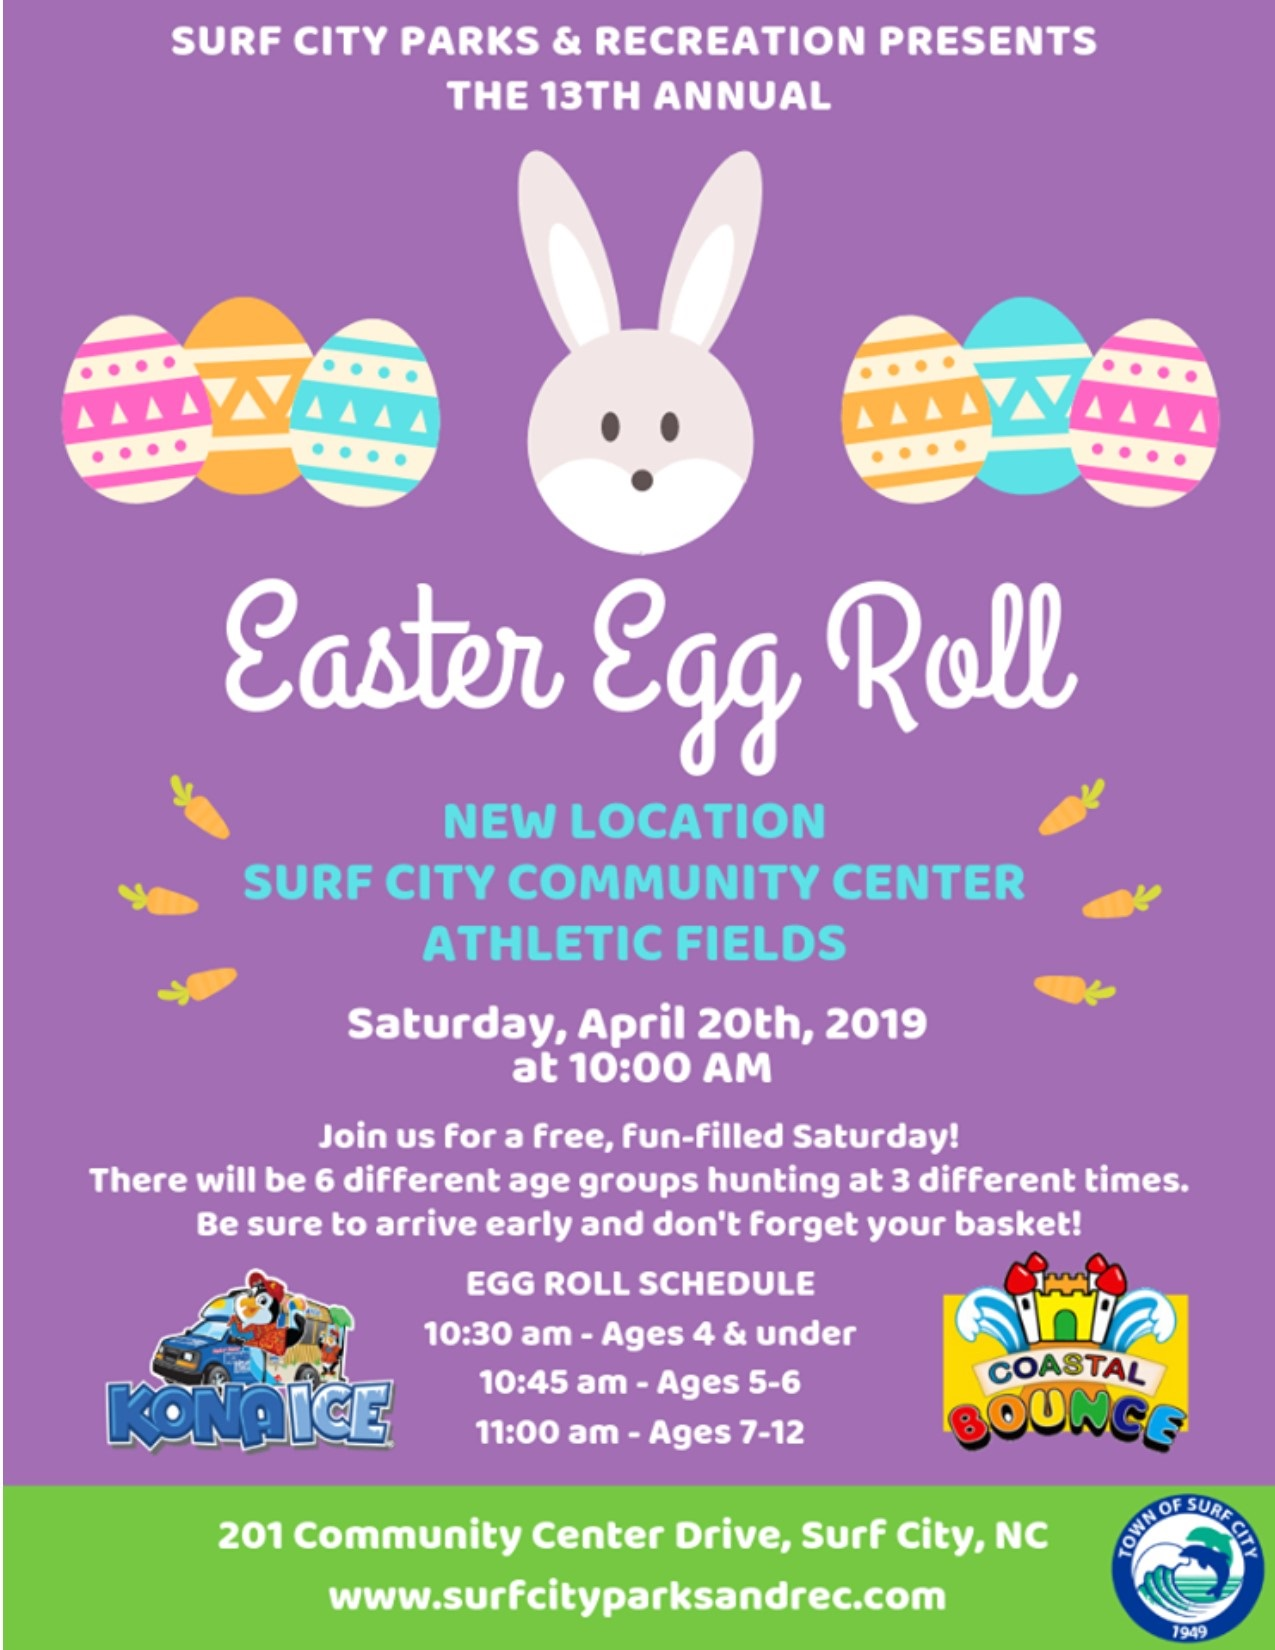 Surf City's Annual Easter Egg Roll